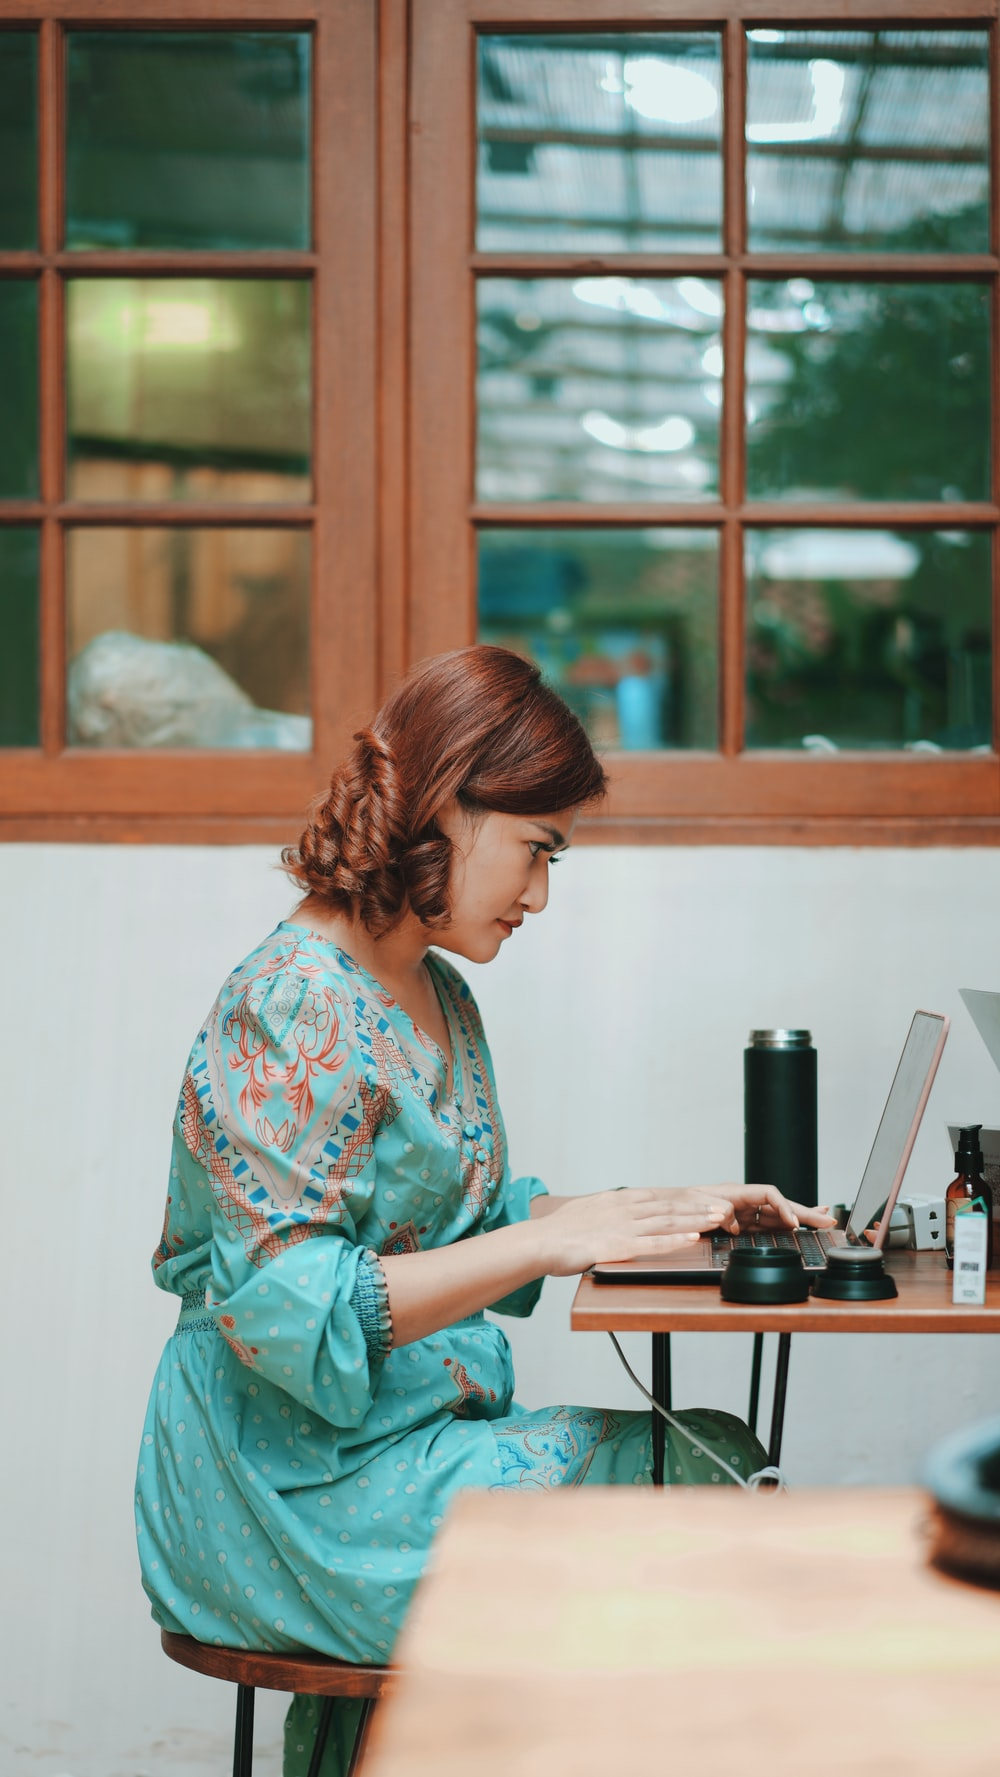 woman in green and white floral long sleeve shirt using computer